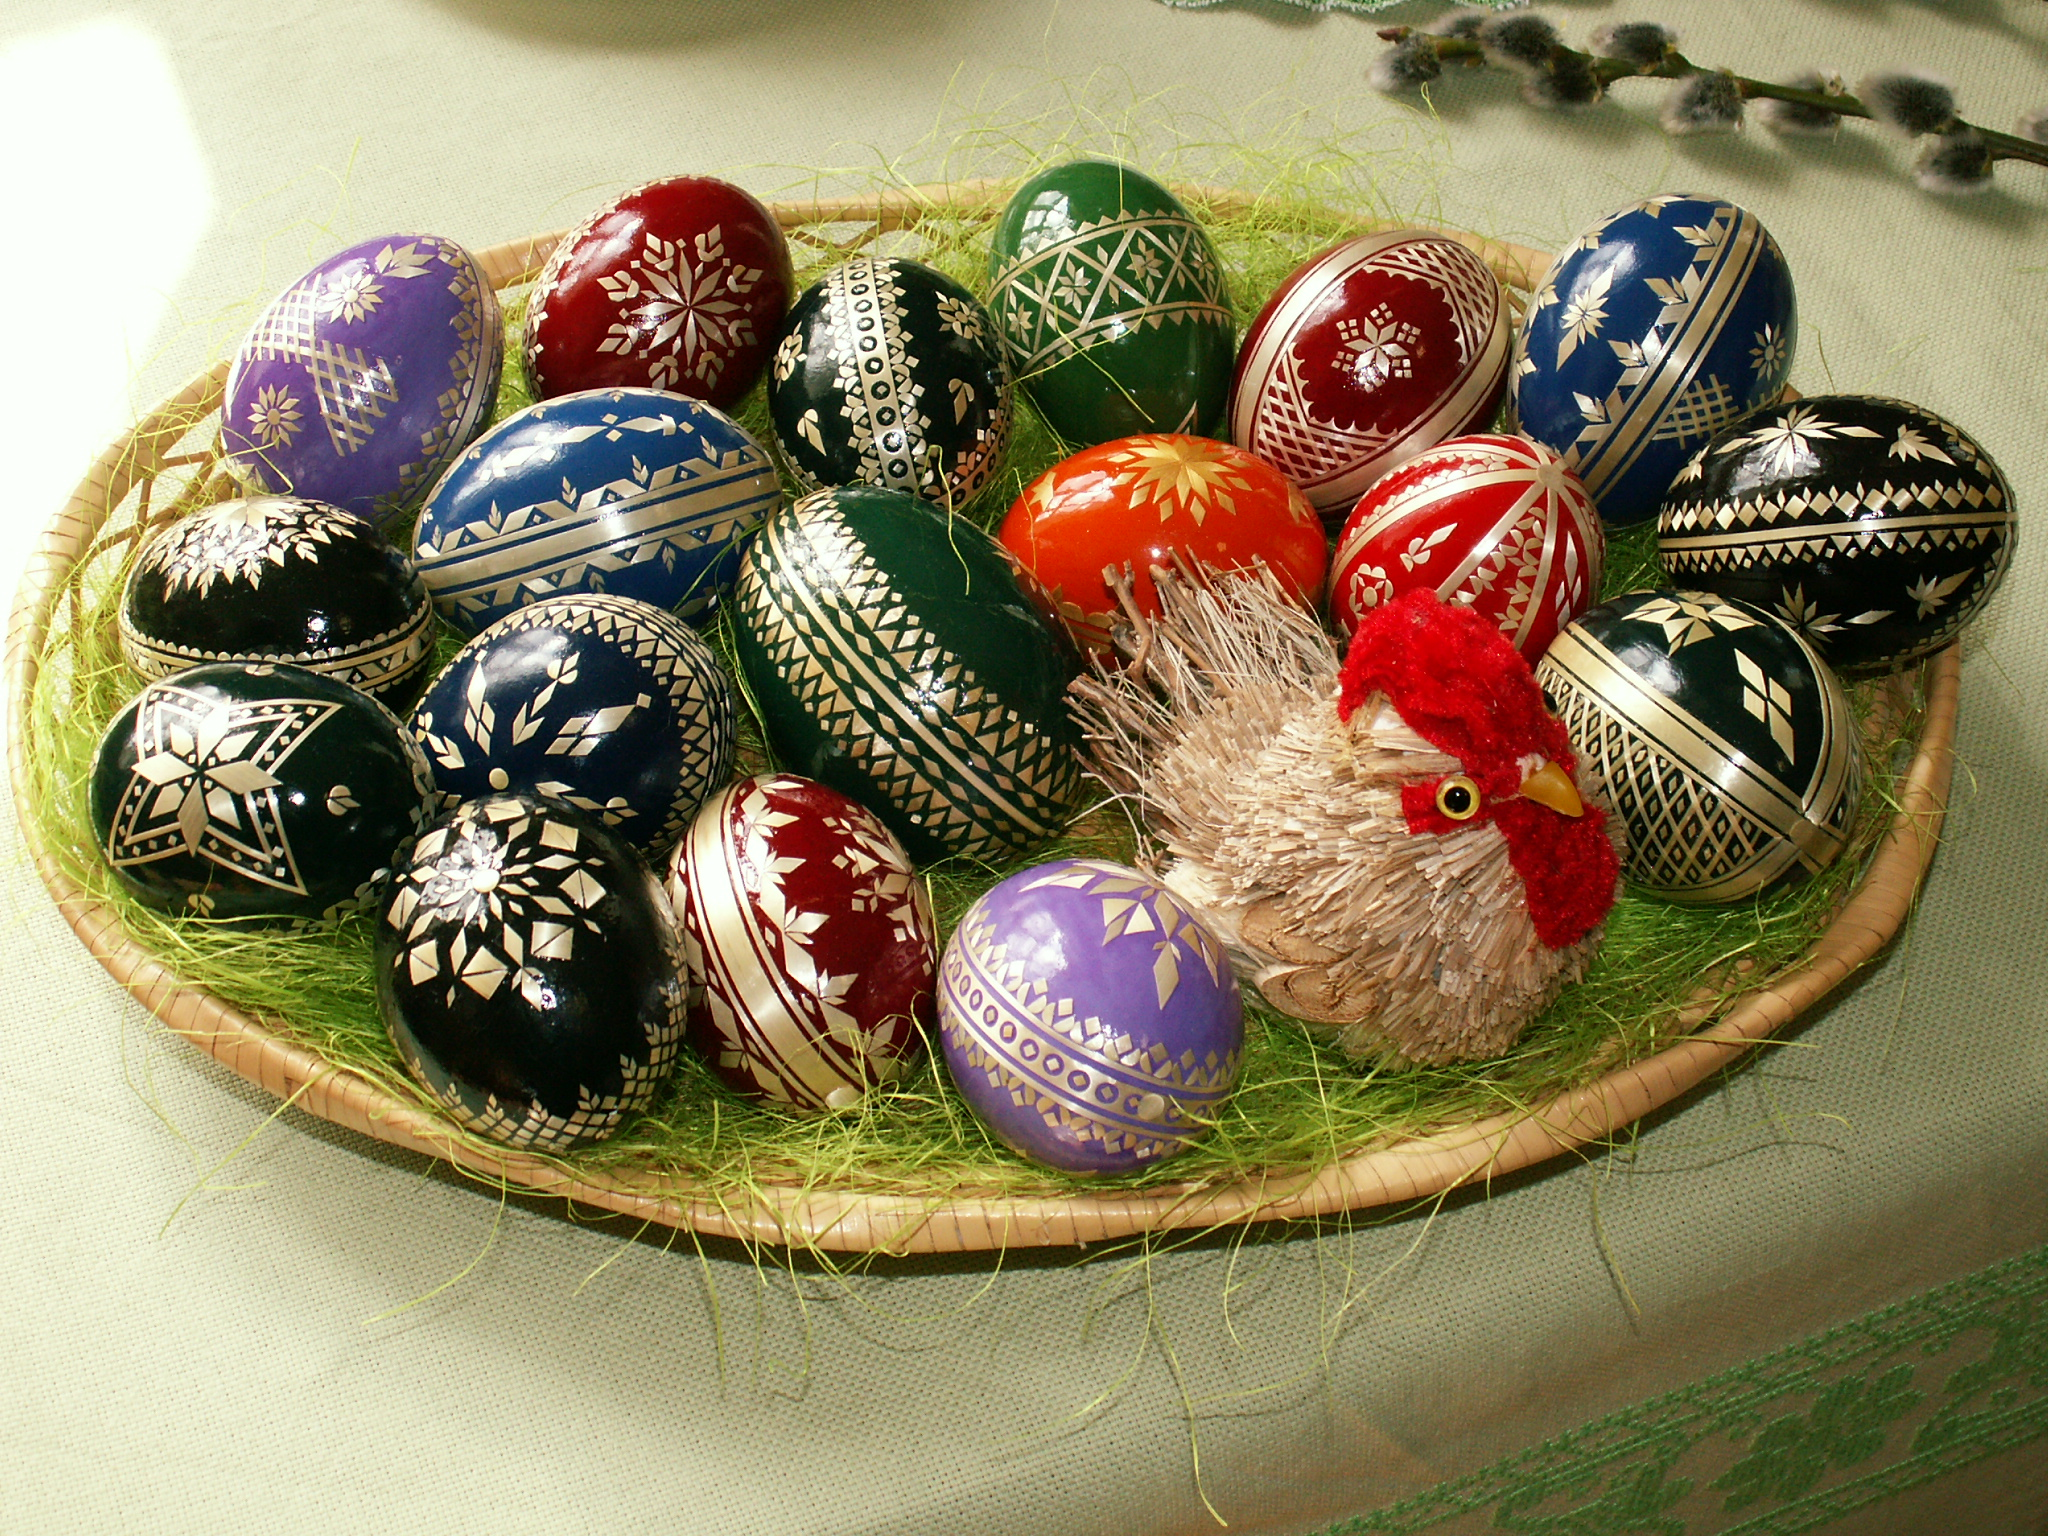 We will be closed for Easter from Good Friday 25th until Easter Monday 28th March 2016 inclusive | Image from https://en.wikipedia.org/wiki/Easter